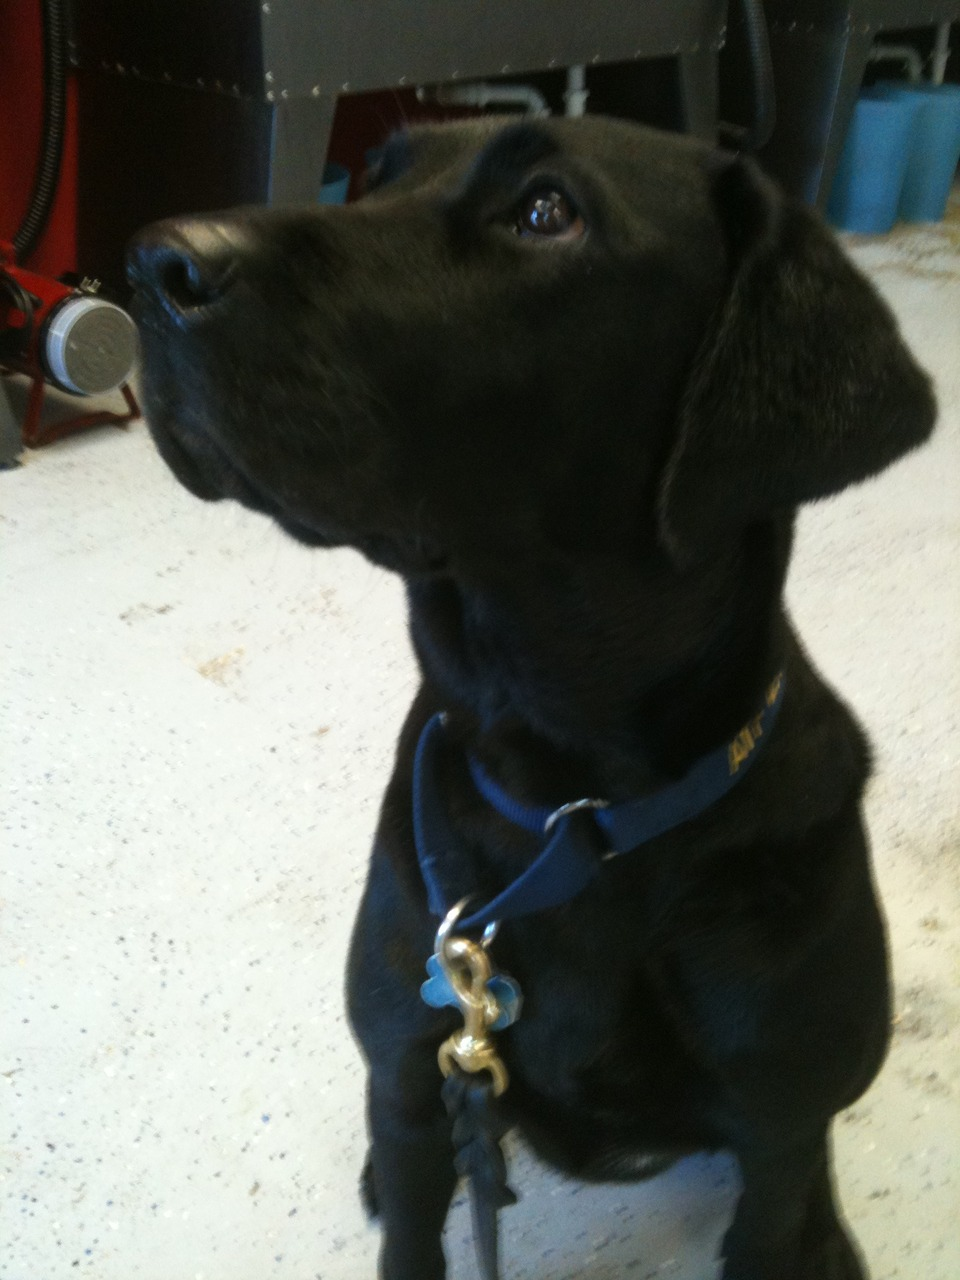 """Farlee is an """"explosive detection canine"""". At the moment, she's detecting a treat."""